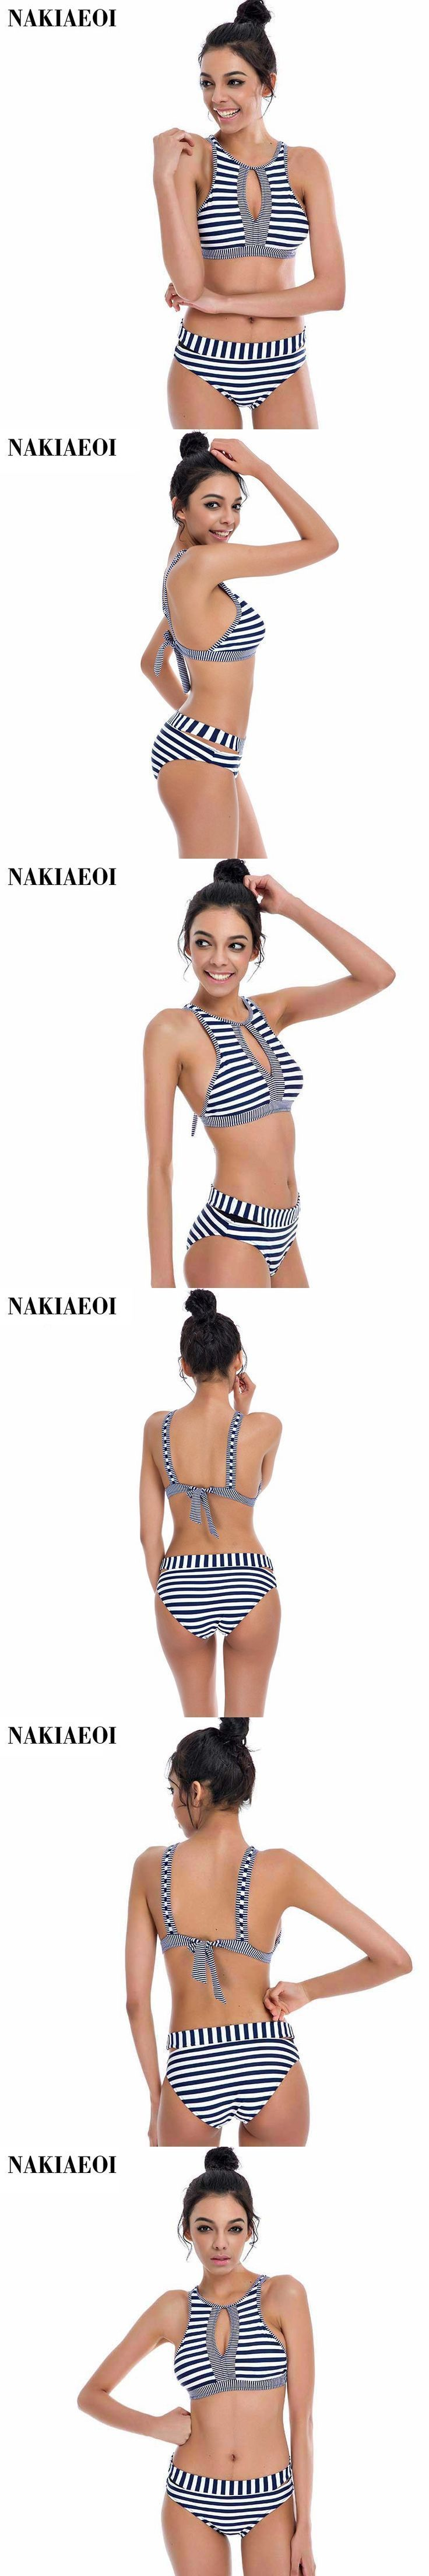 New Vintage High Waist Swimwear Stripe Pattern High Neck Women Swimsuit B ……  – Praktische Informationen